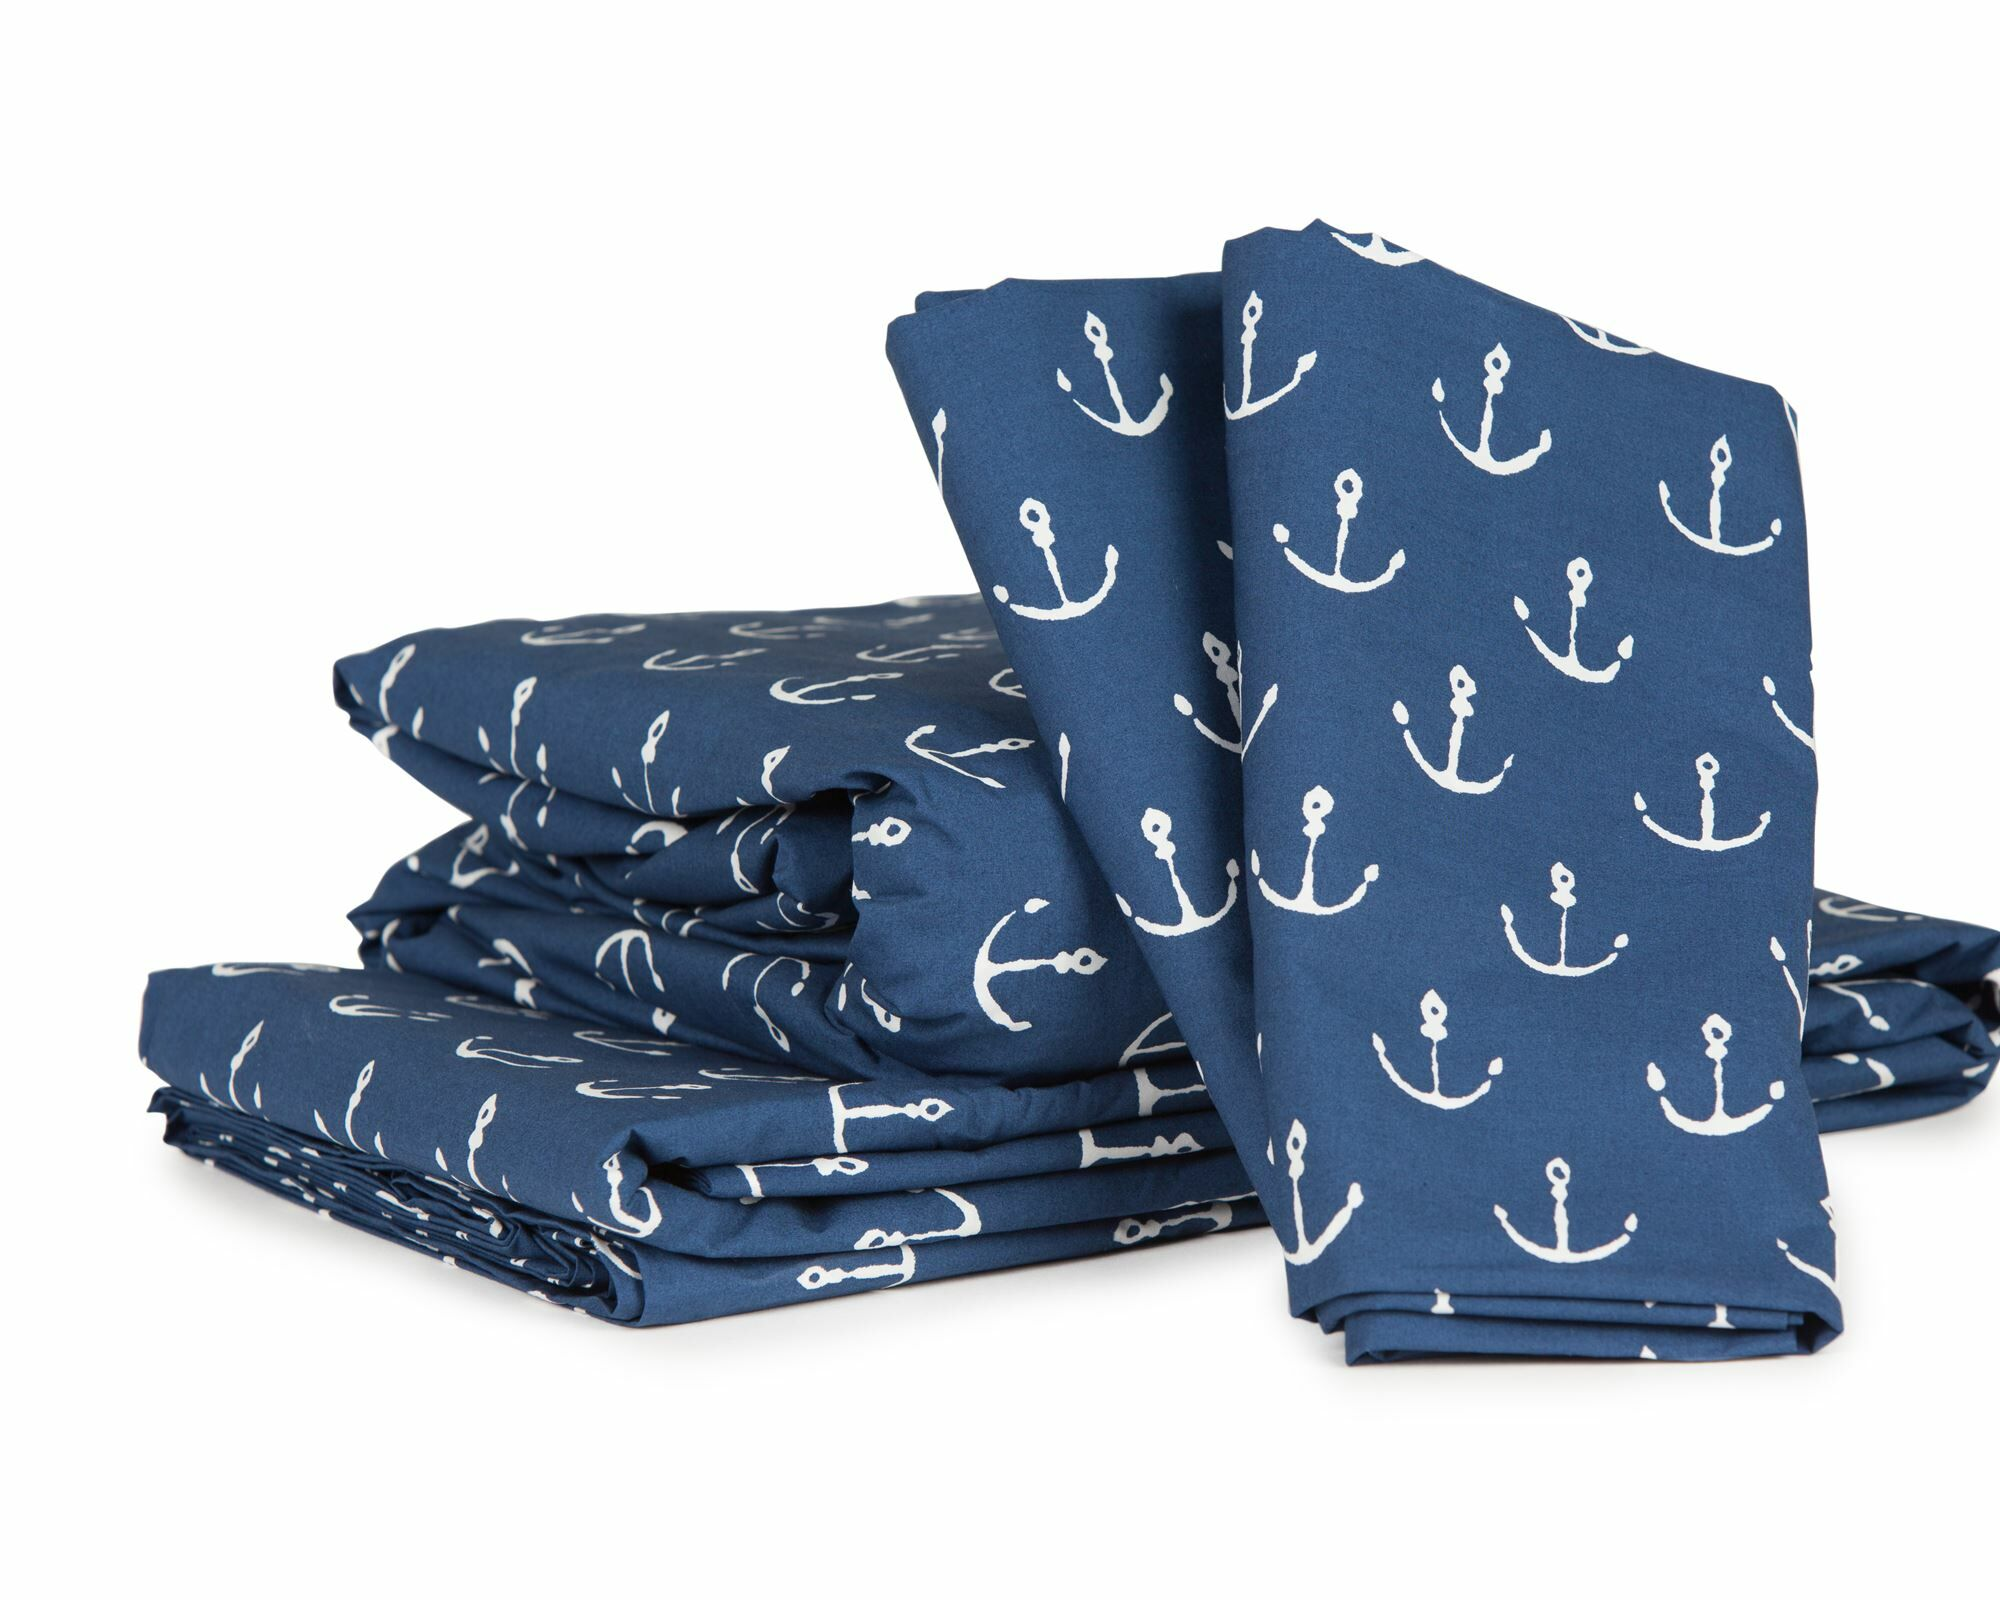 Anchors by David Hart 300 Thread Count Cotton Percale Sheet Set Size: Full, Color: Navy